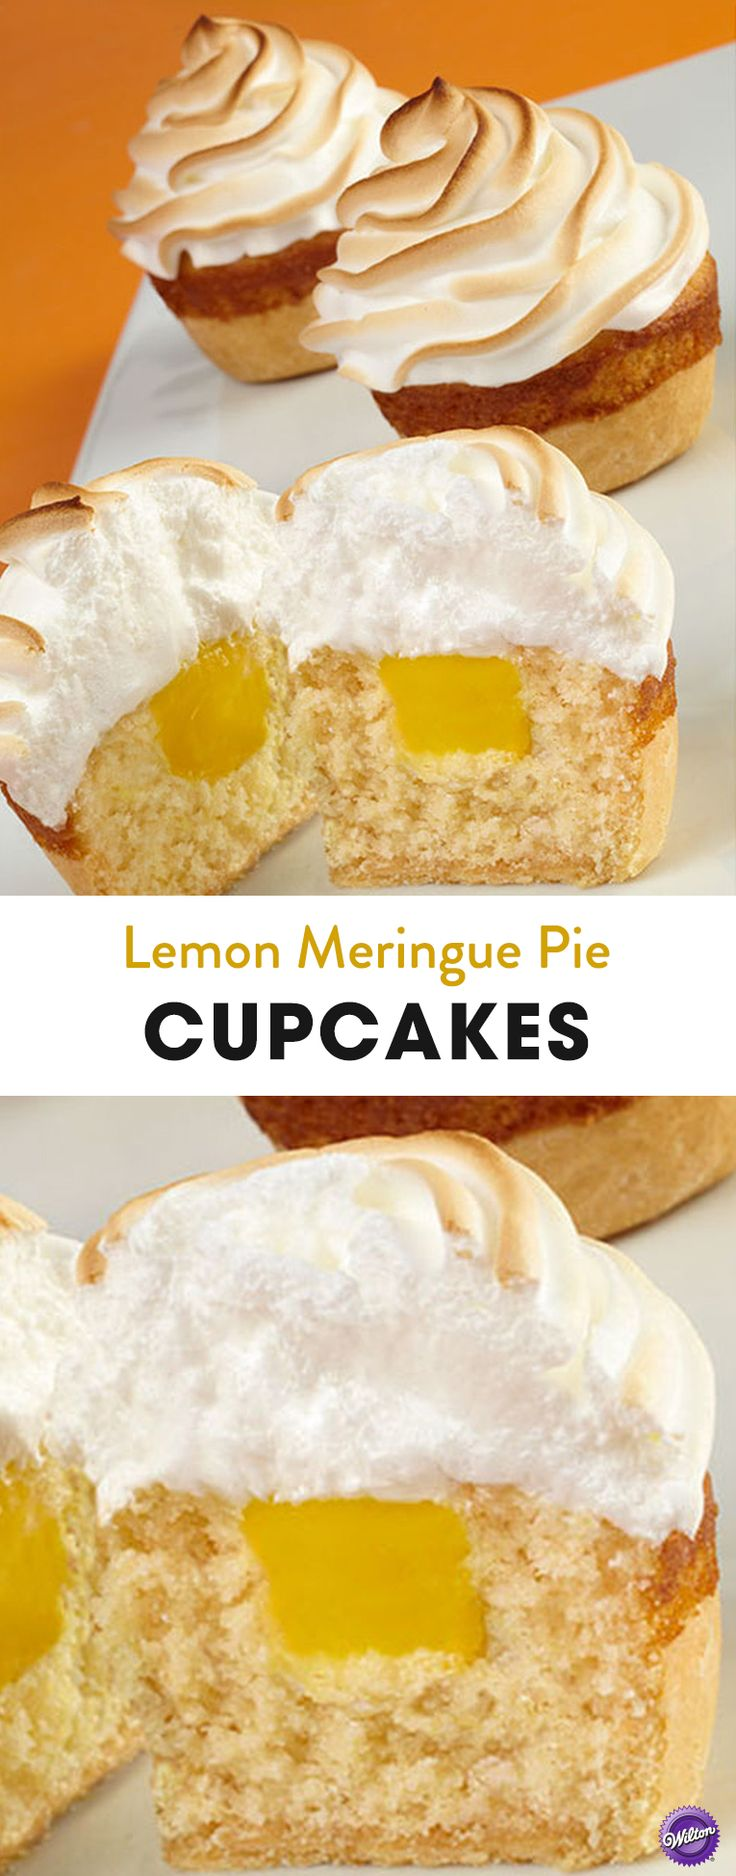 Lemon Meringue Pie Cupcakes Recipe - Get the tangy flavor of lemon in these lemon meringue pie cupcakes! Recipe makes about two dozen cupcakes.